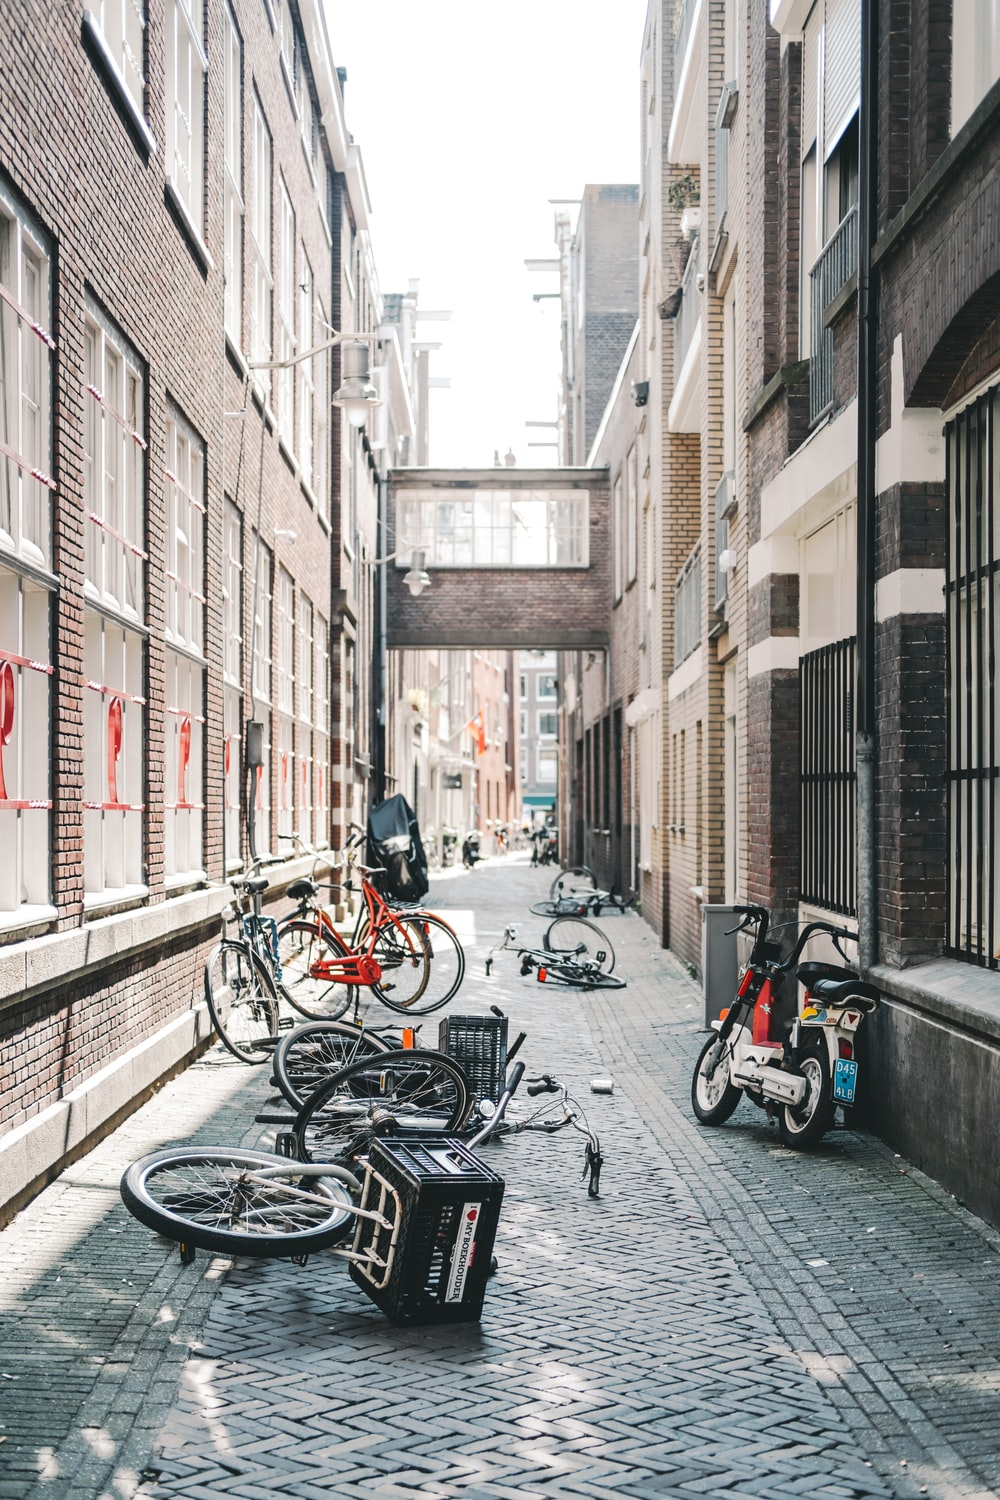 parked bicycles between concrete buildings